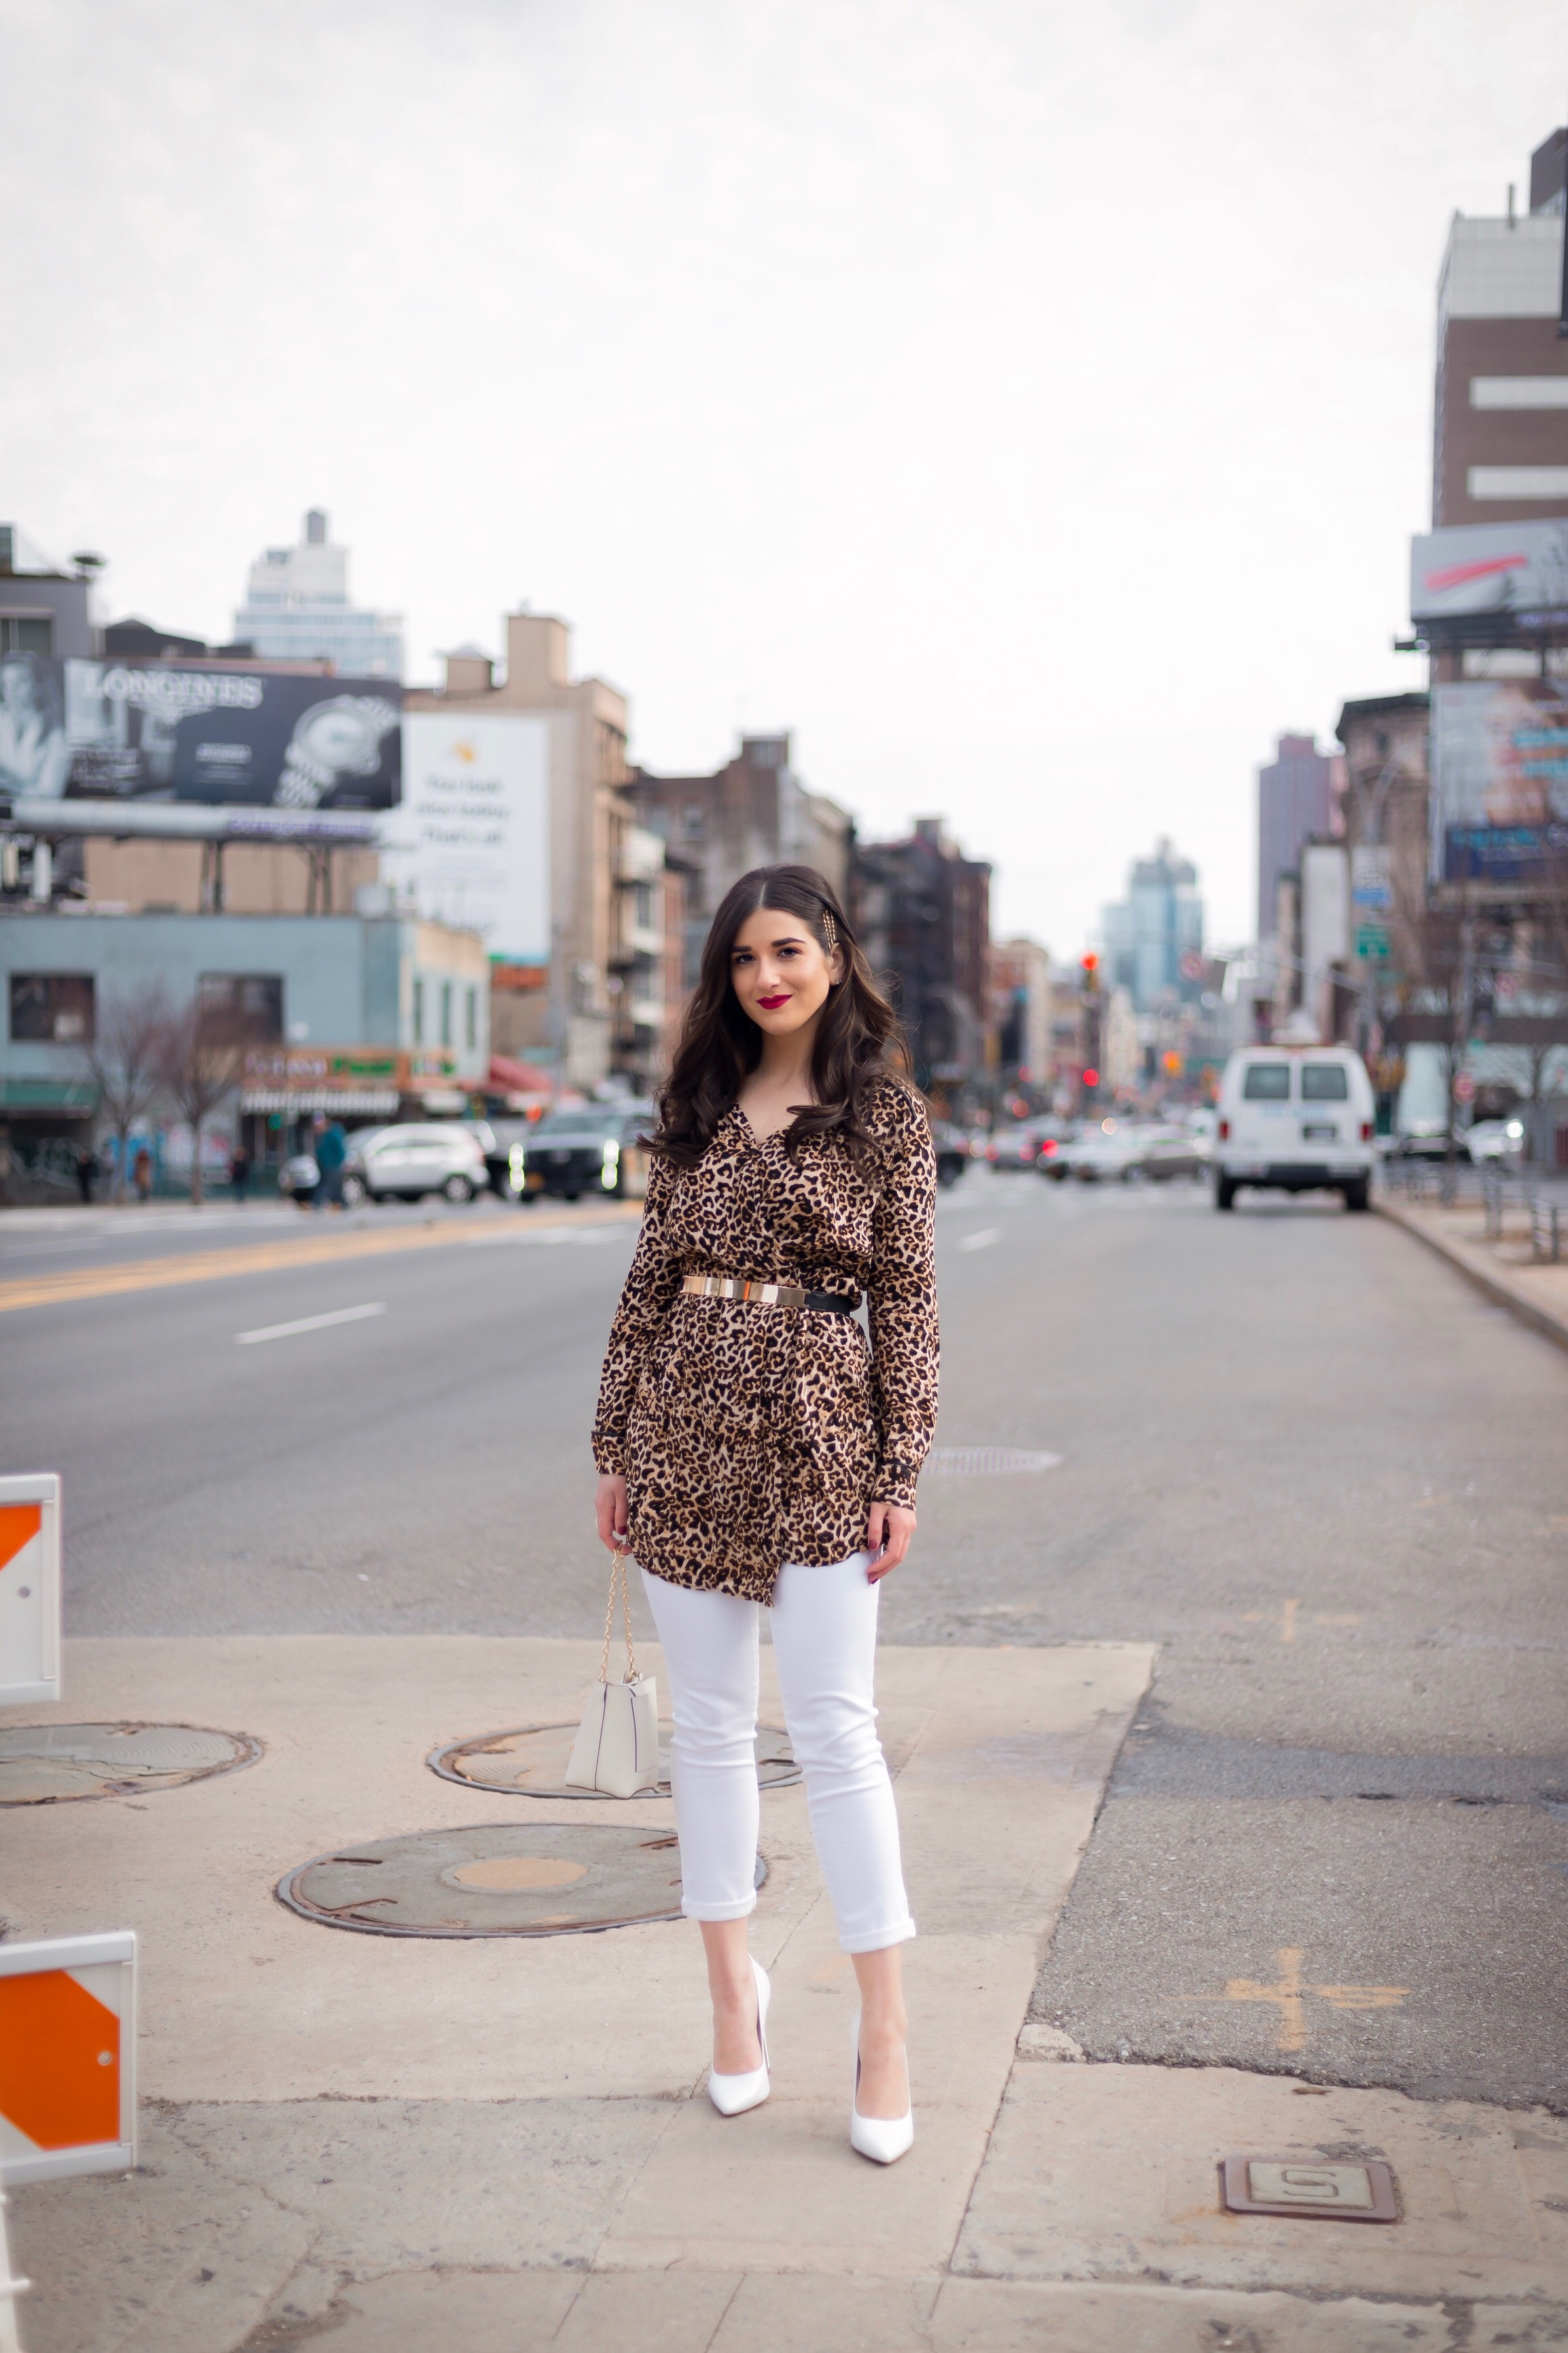 Dressing Up My Democracy Denim Esther Santer Fashion Blog NYC Street Style Blogger Outfit OOTD Trendy Shopping White Jeans Leopard Top Coat Inspo Bobby Pins Hair Trend White Heels Wear Chaya Ross Photography Inspiration Cream Chain Small Bag Gold Belt.jpg